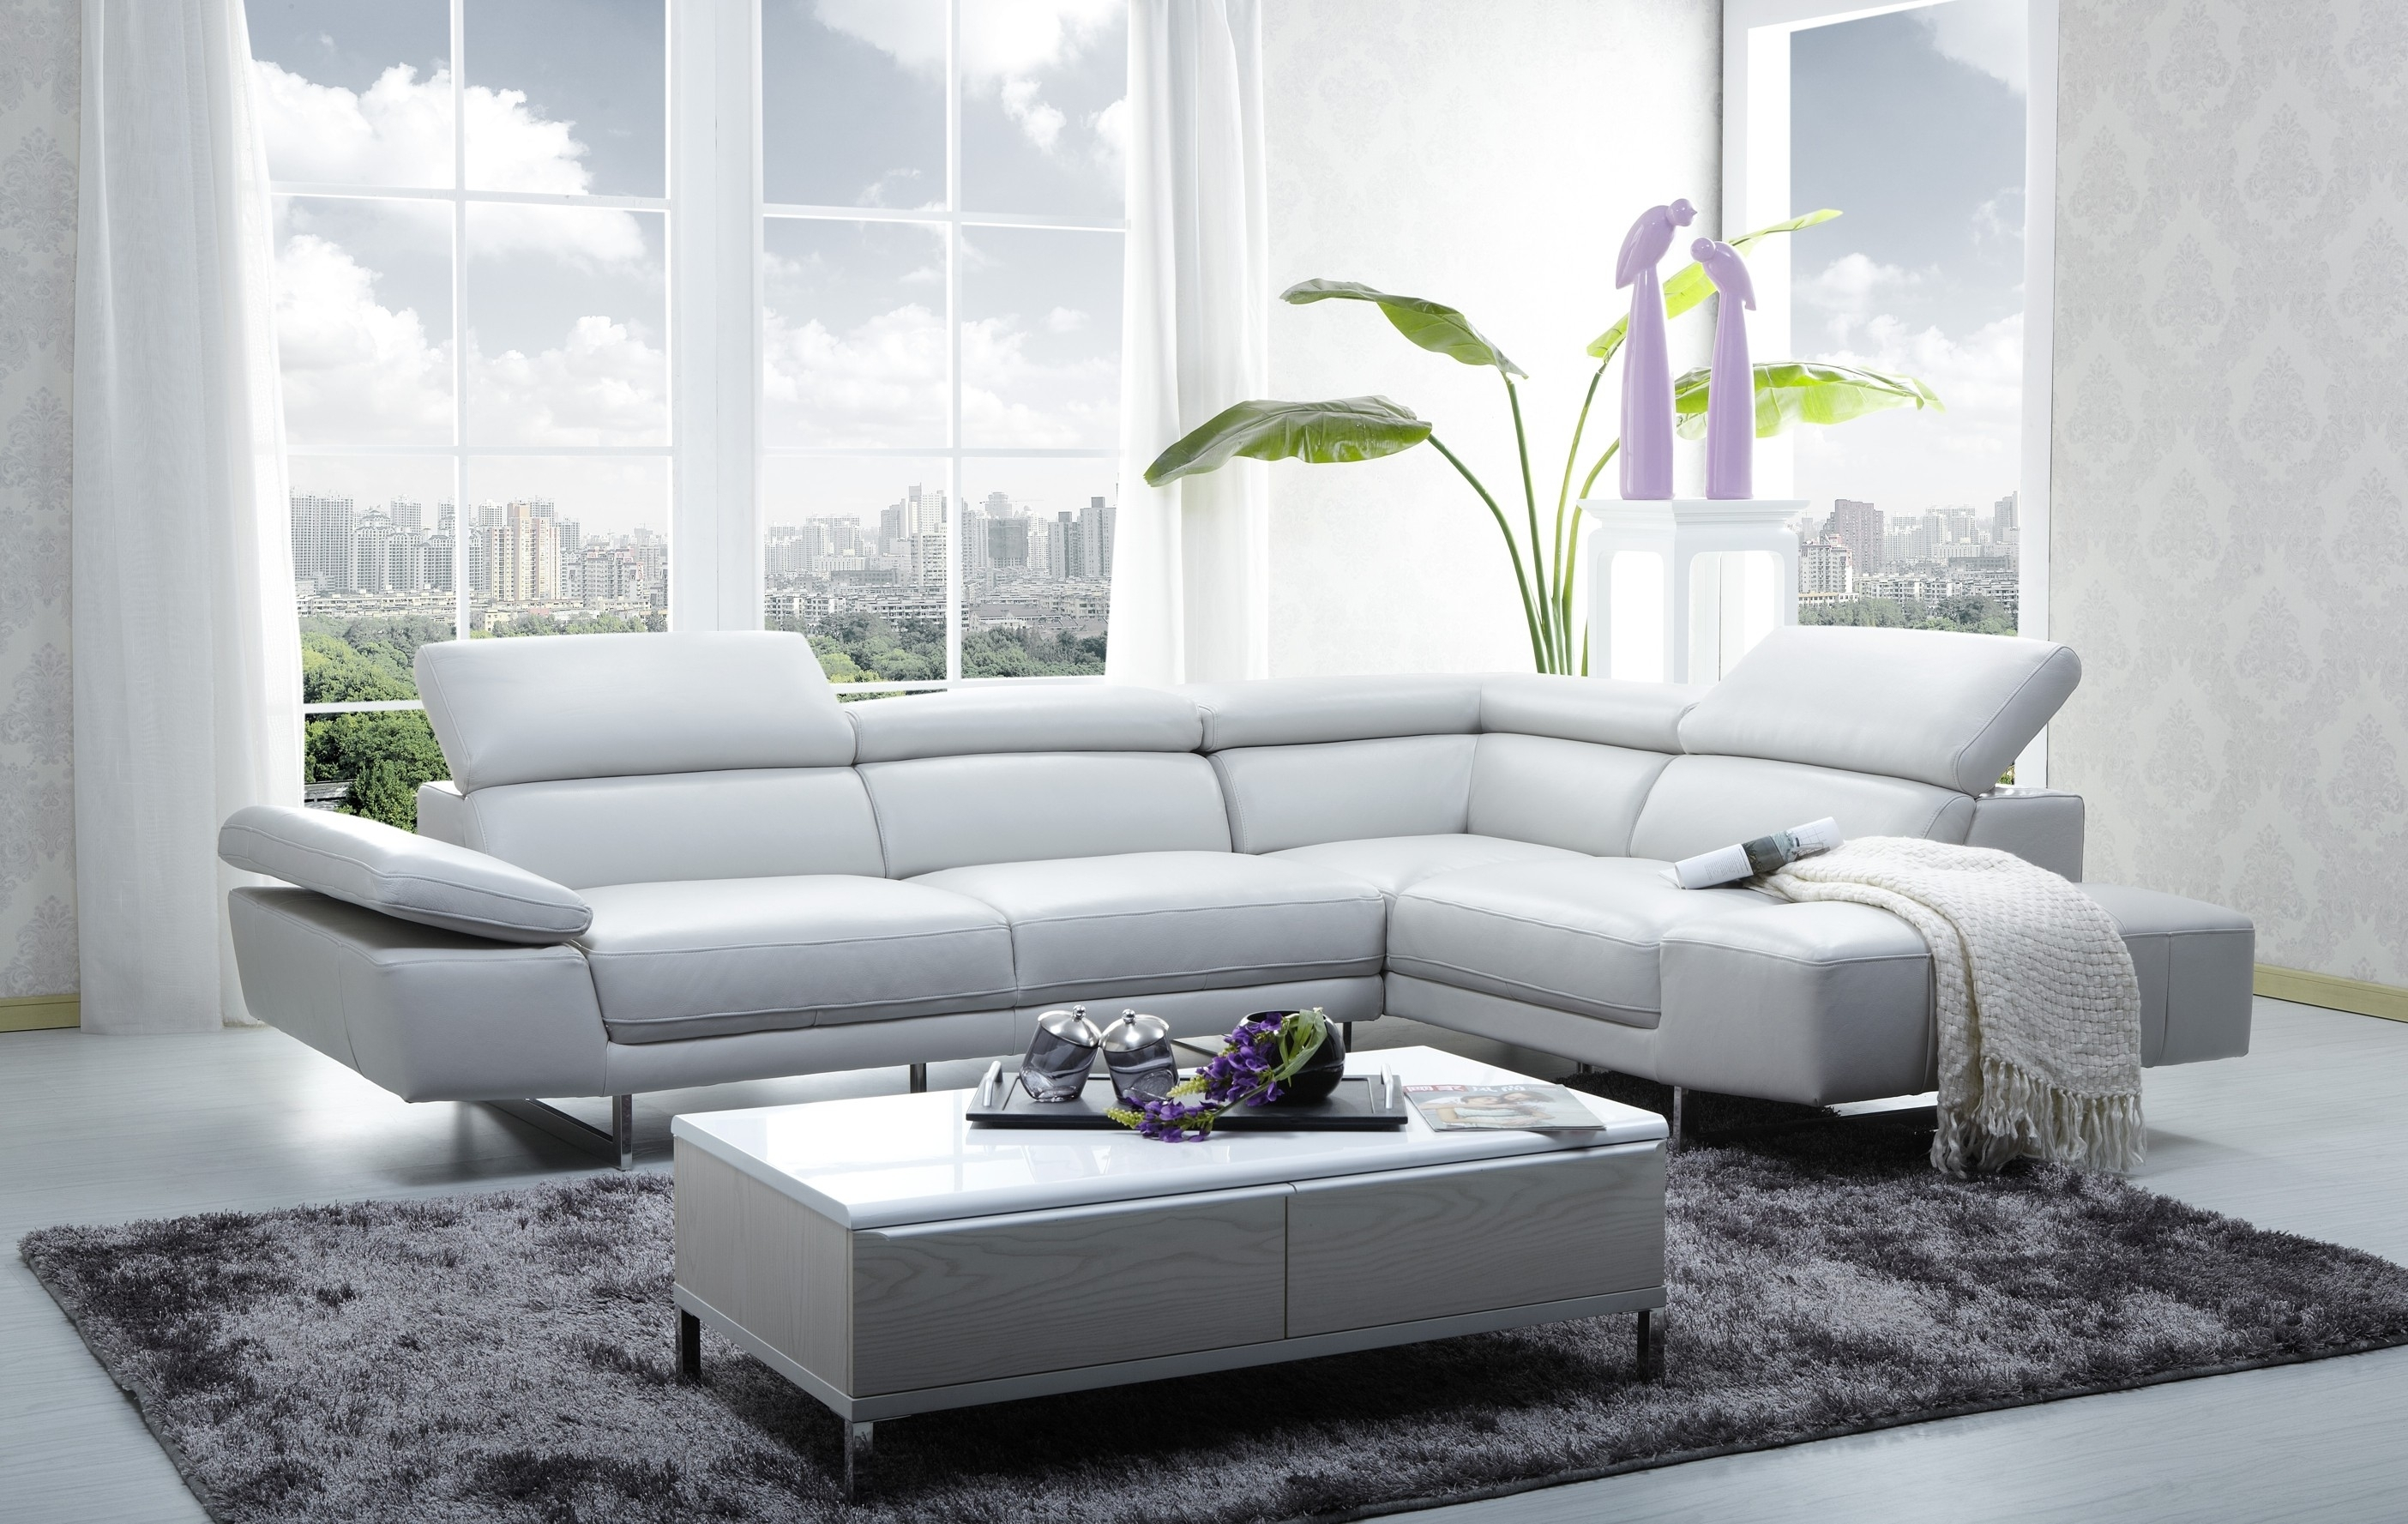 1717 Italian Leather Modern Sectional Sofa With Regard To Sectional Sofas In Stock (Image 1 of 10)